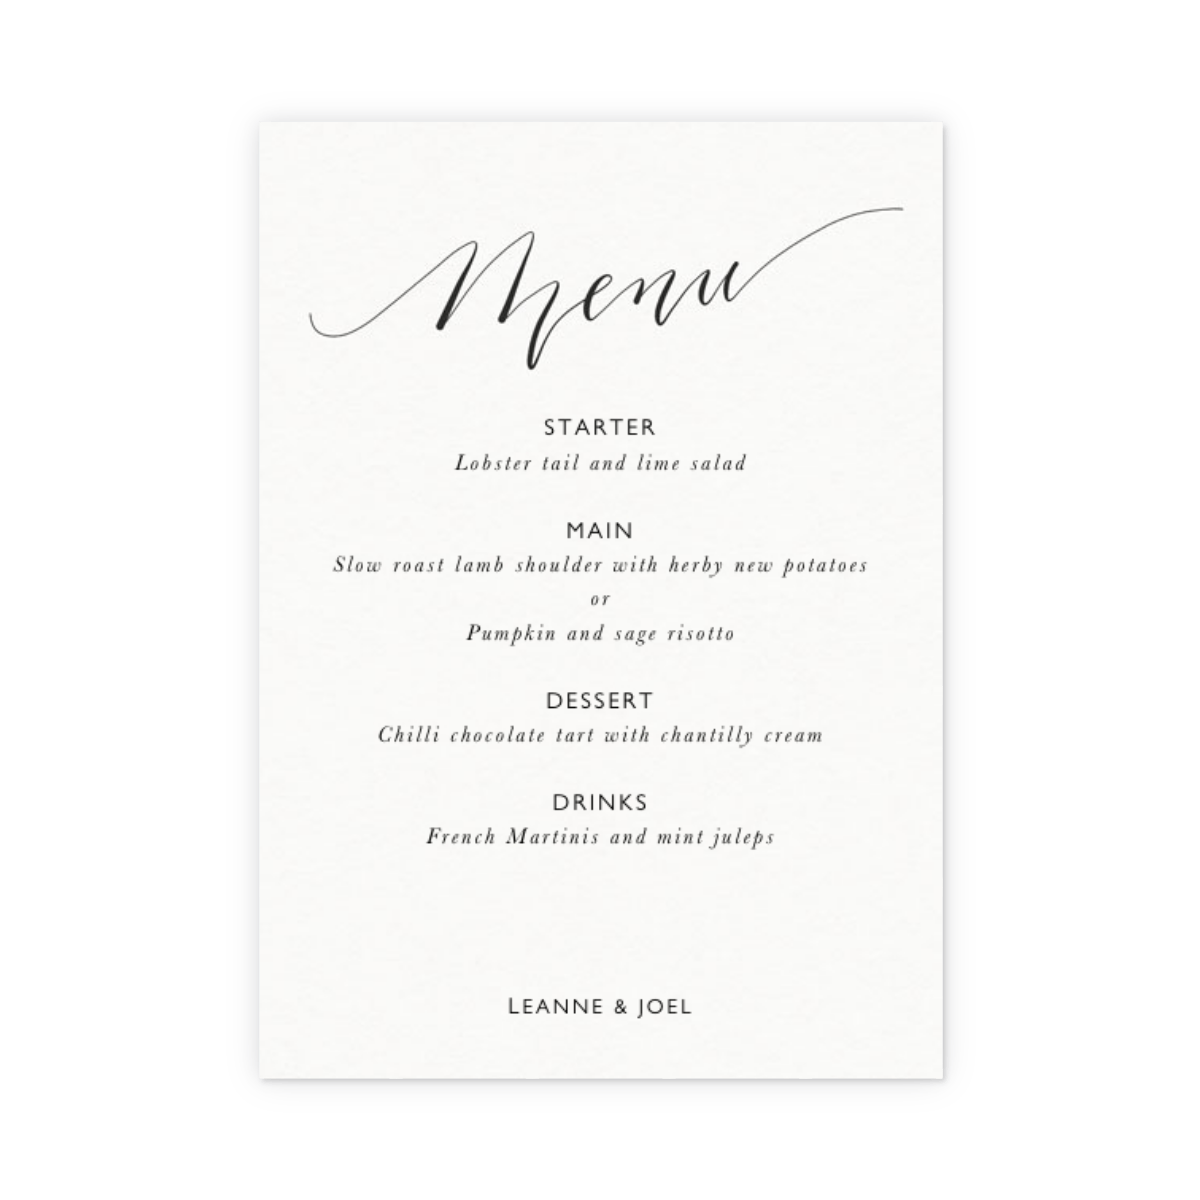 Https%3a%2f%2fwww.papier.com%2fproduct image%2f84245%2f4%2fcalligraphy menu 20407 front 1565542803.png?ixlib=rb 1.1